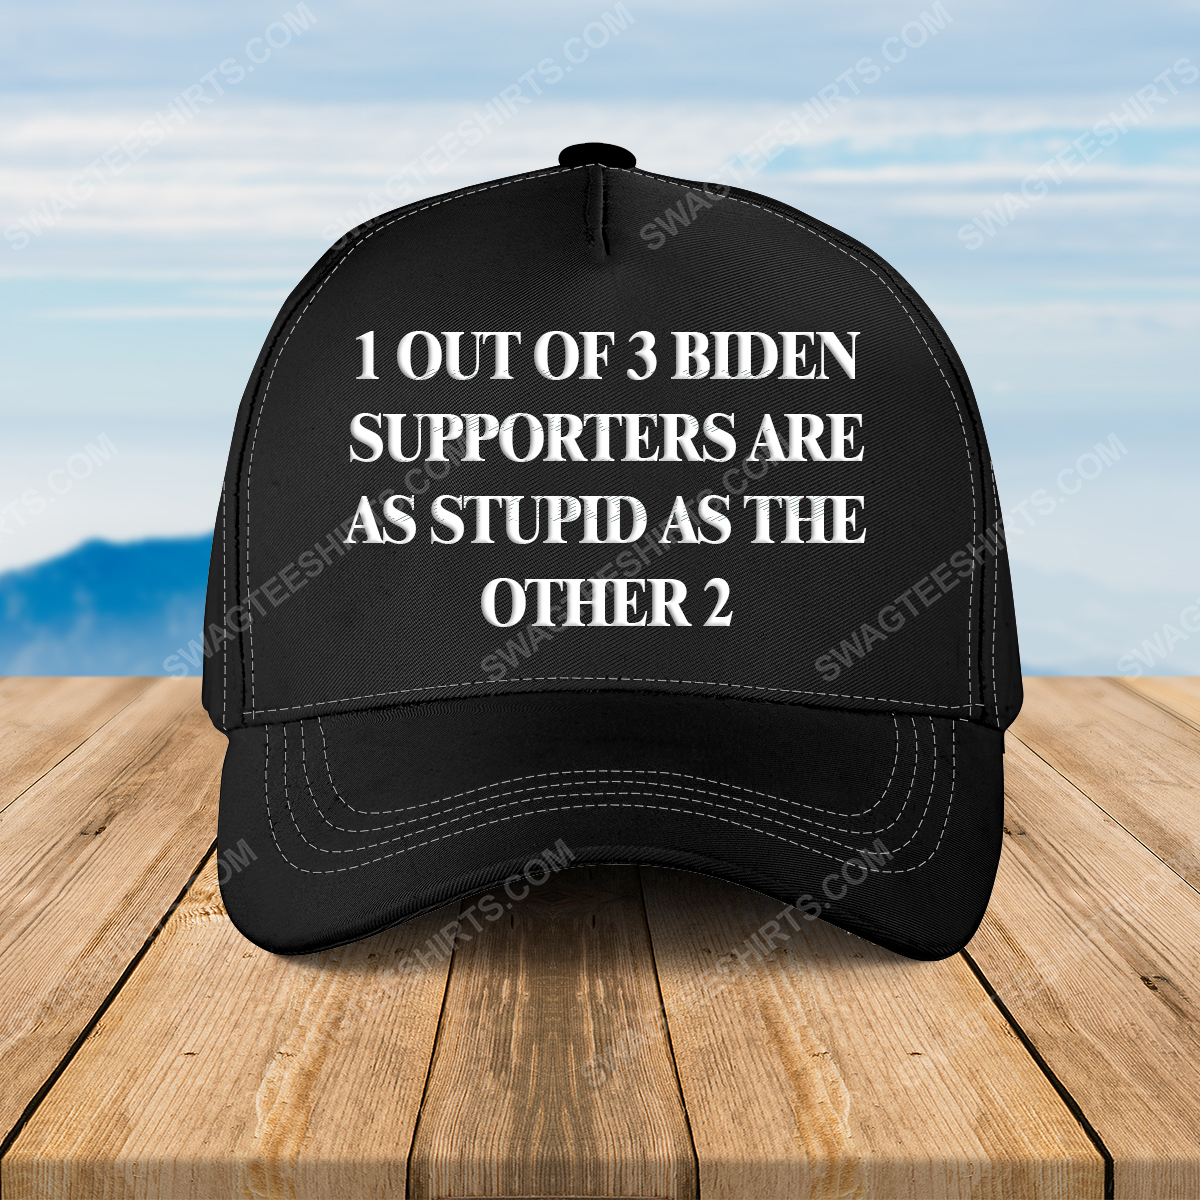 1 out of 3 biden supporters are as stupid as the other 2 full print classic hat 1